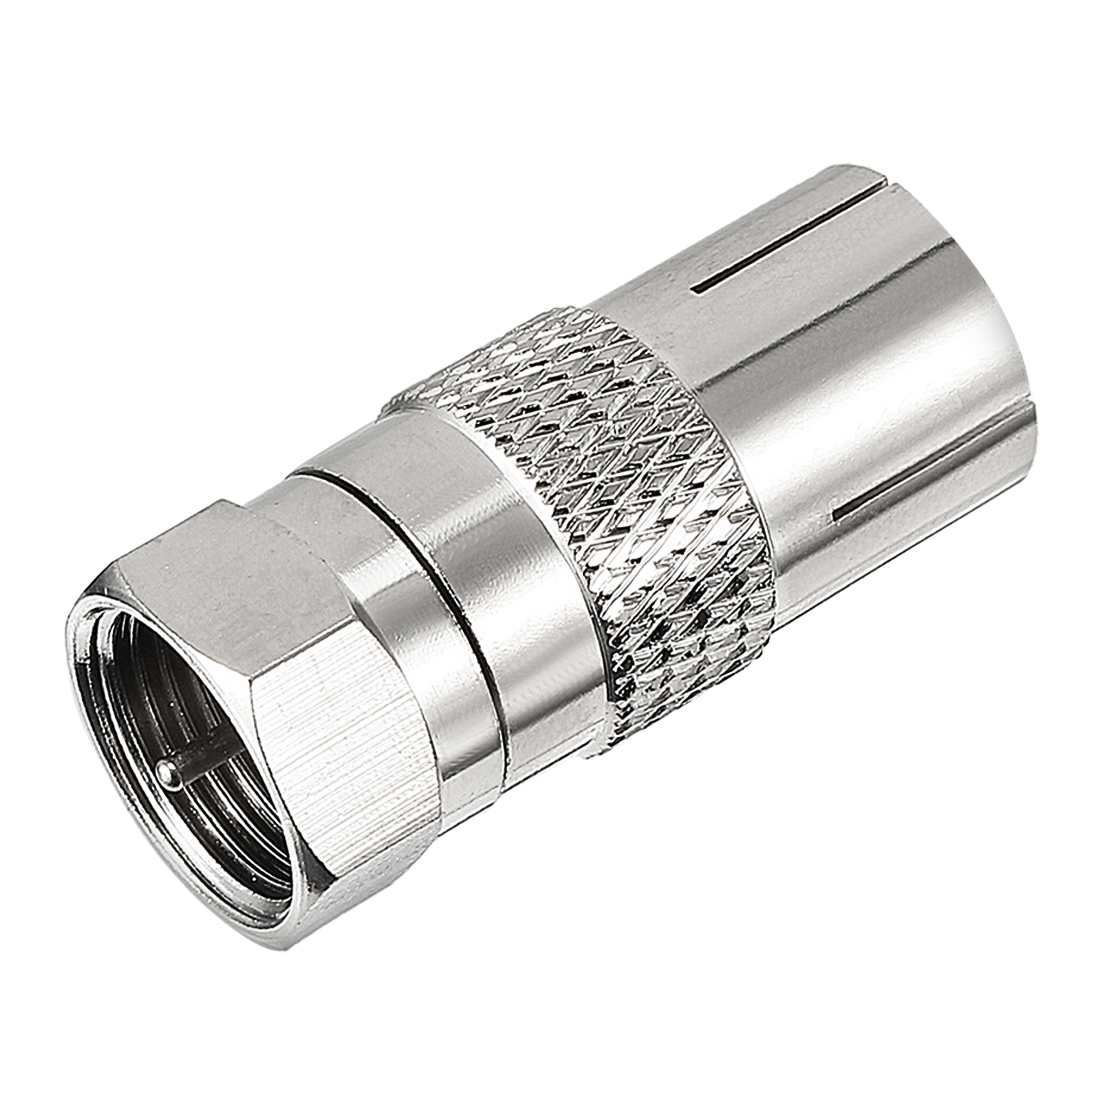 Silver Tone BSP F Male to PAL Female Jack RF Coaxial Adapter Connector